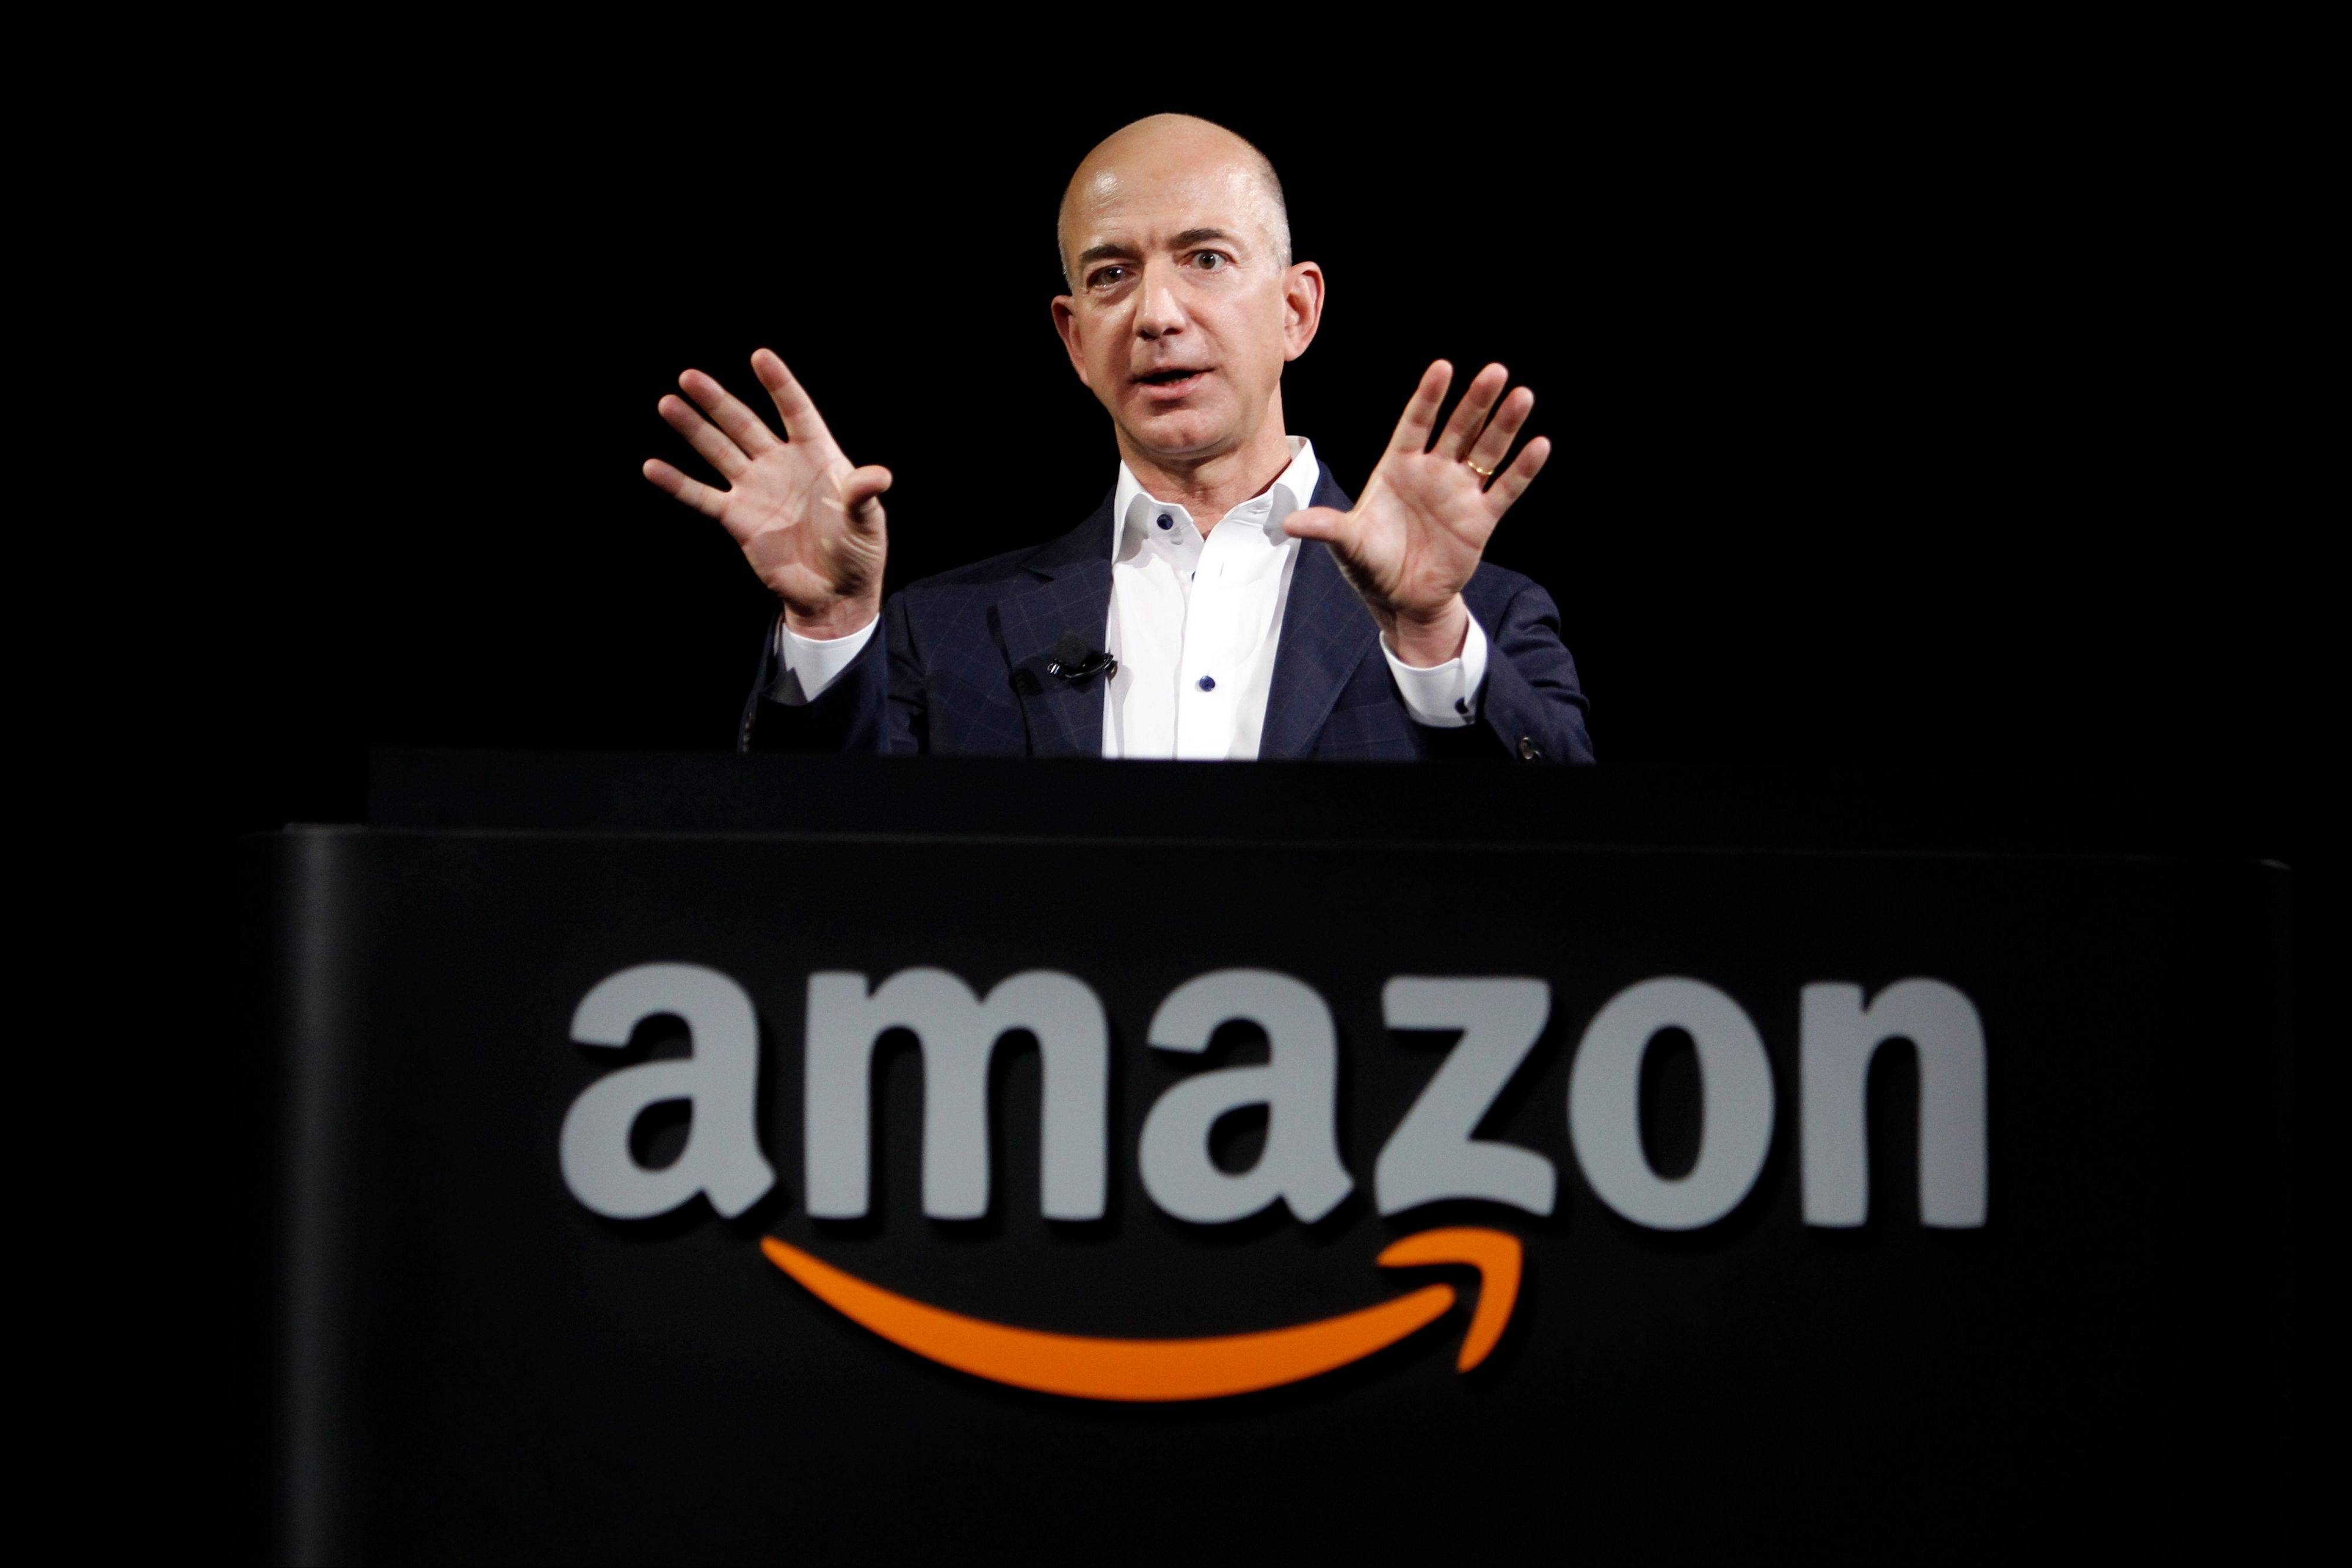 Amazon CEO to buy Washington Post